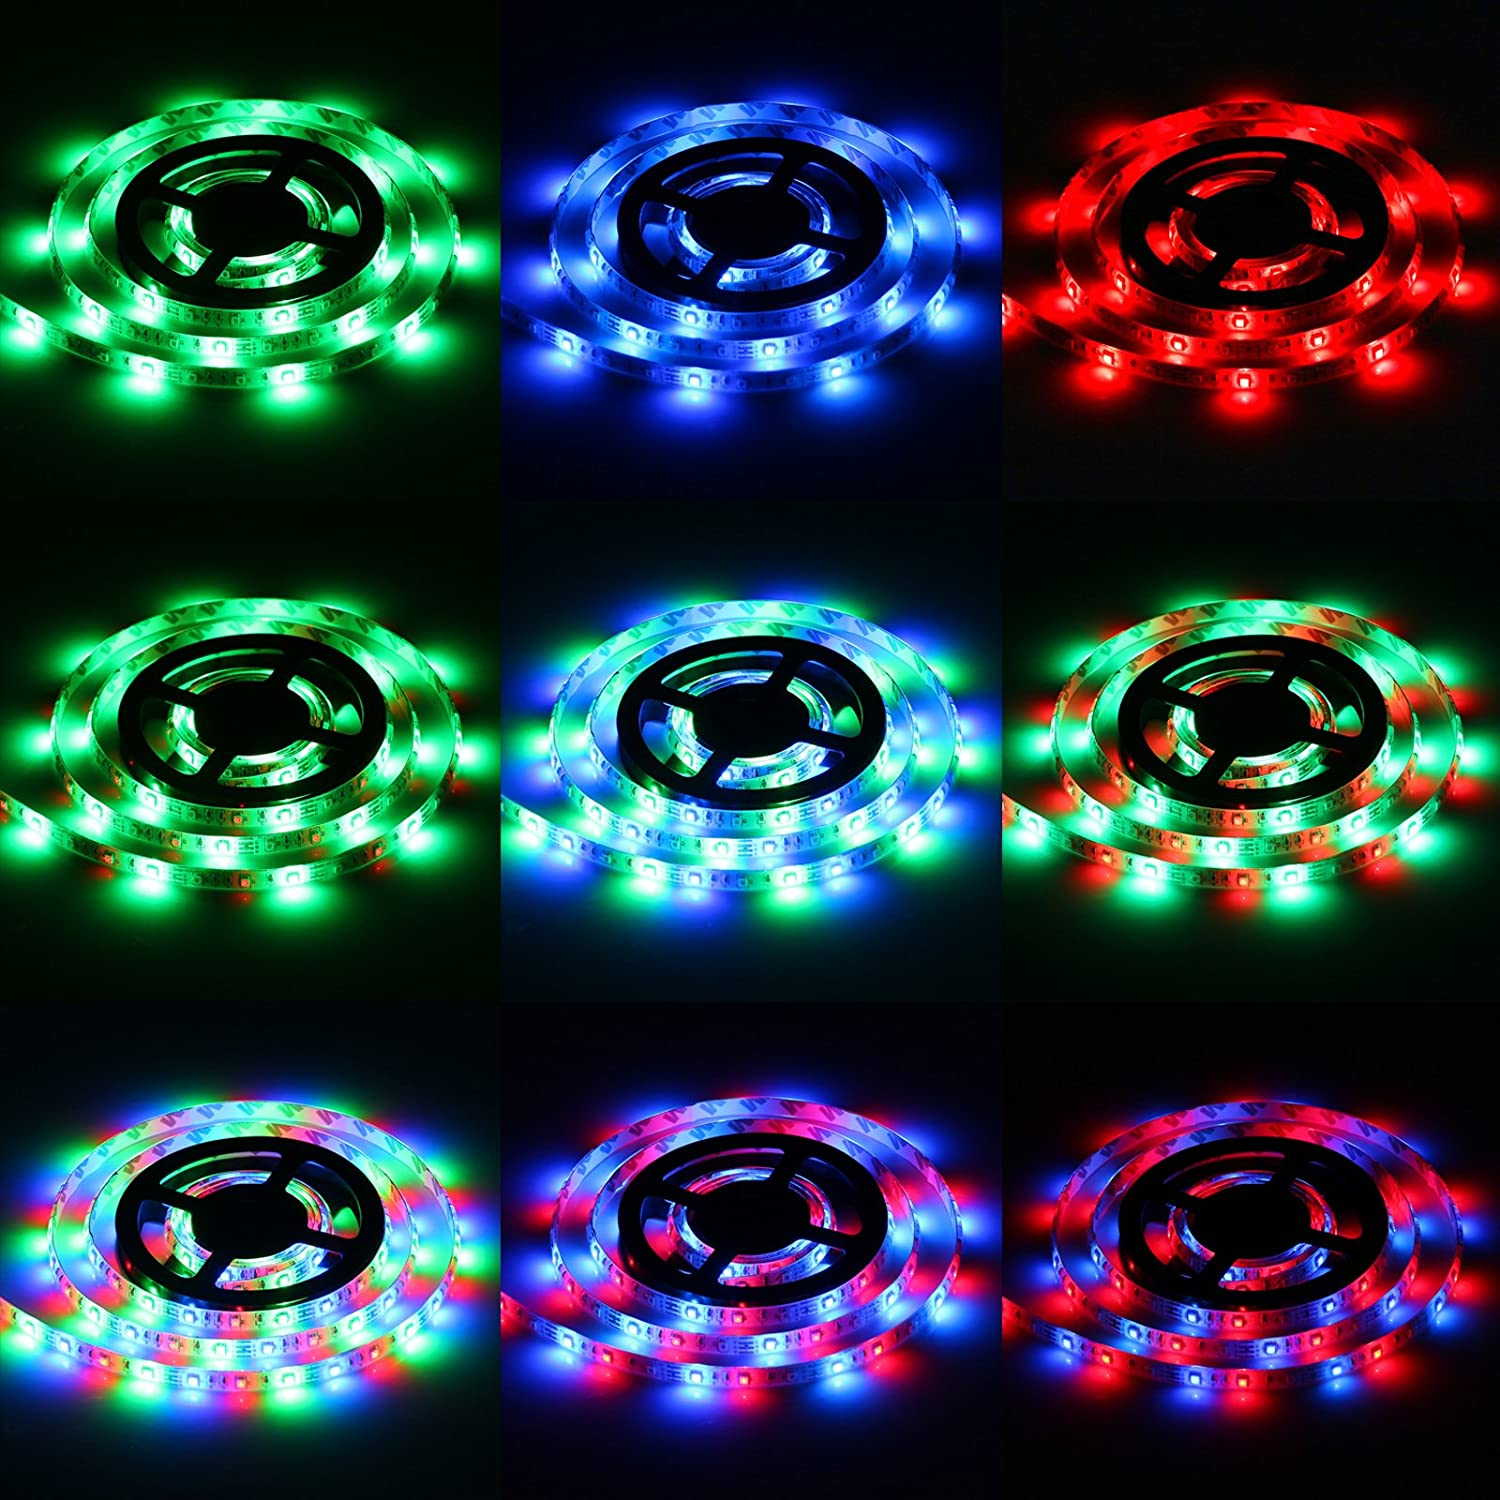 Led Light Strips Sunsbell Battery Powered Rope Flexible Strip With Elements For On Wiring To Lights Waterproof Smd 3528 200cm 656ft Rgb Home Kitchen